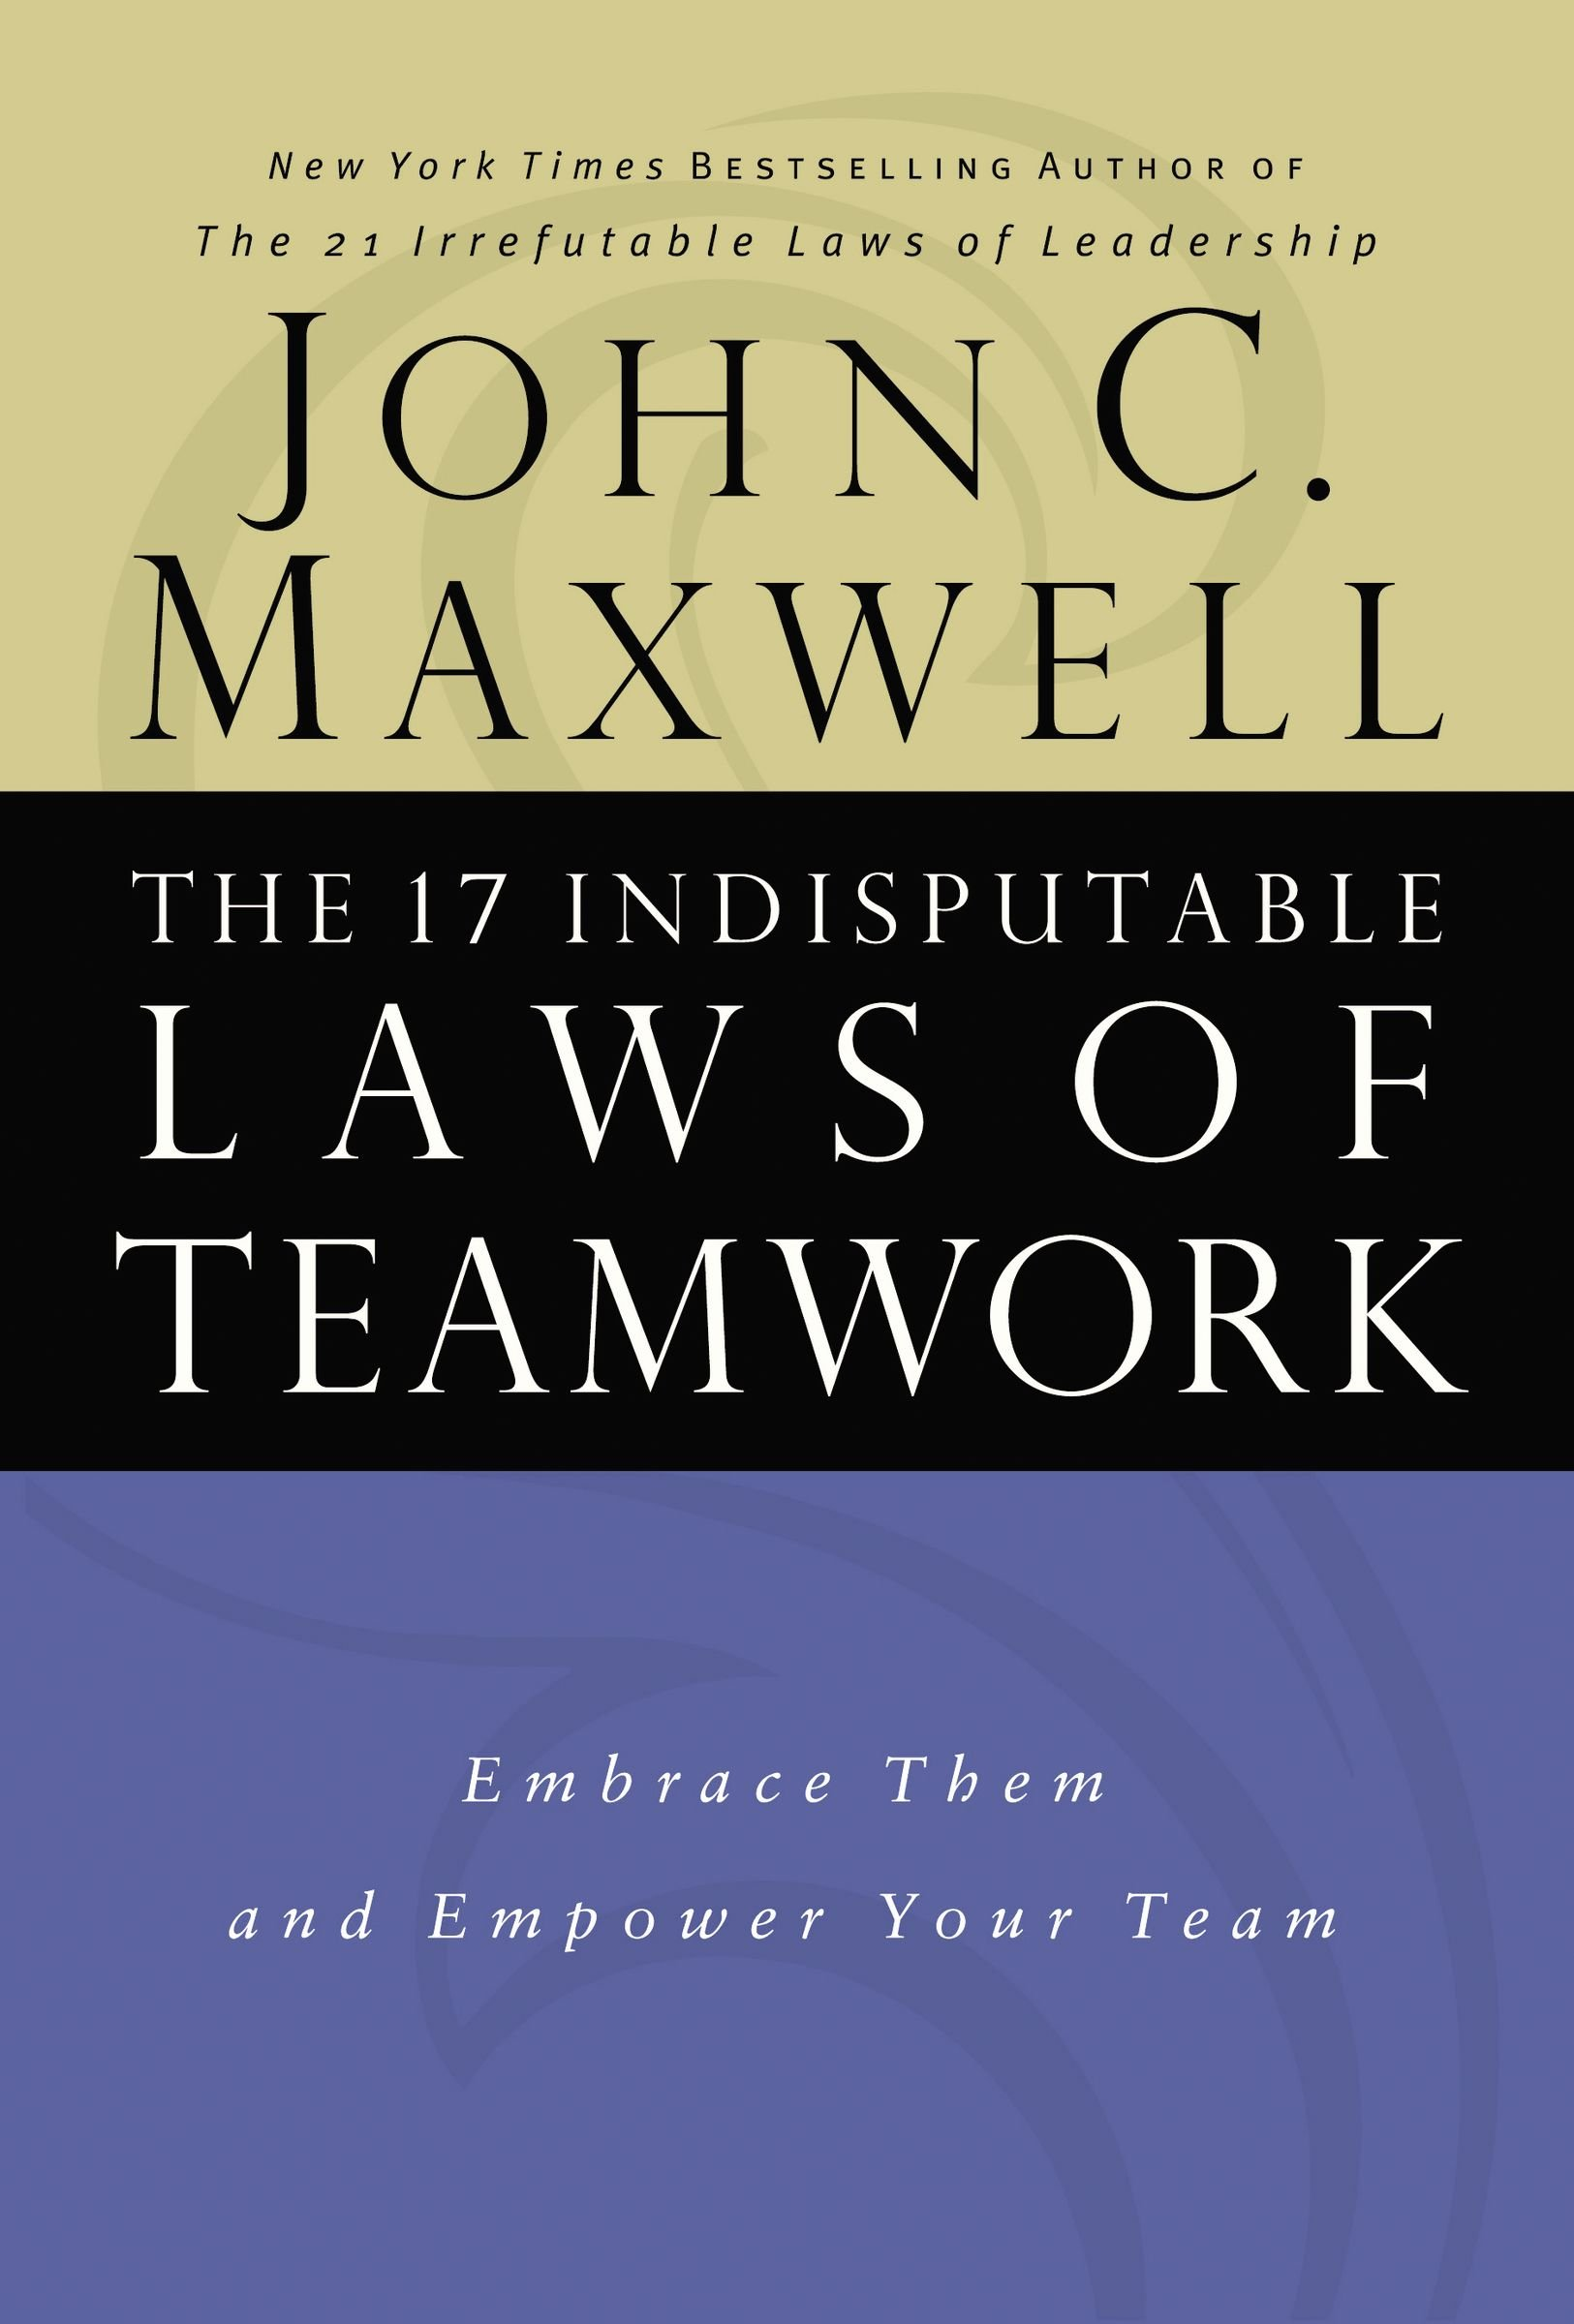 Read Online The 17 Indisputable Laws of Teamwork: Embrace Them and Empower Your Team PDF